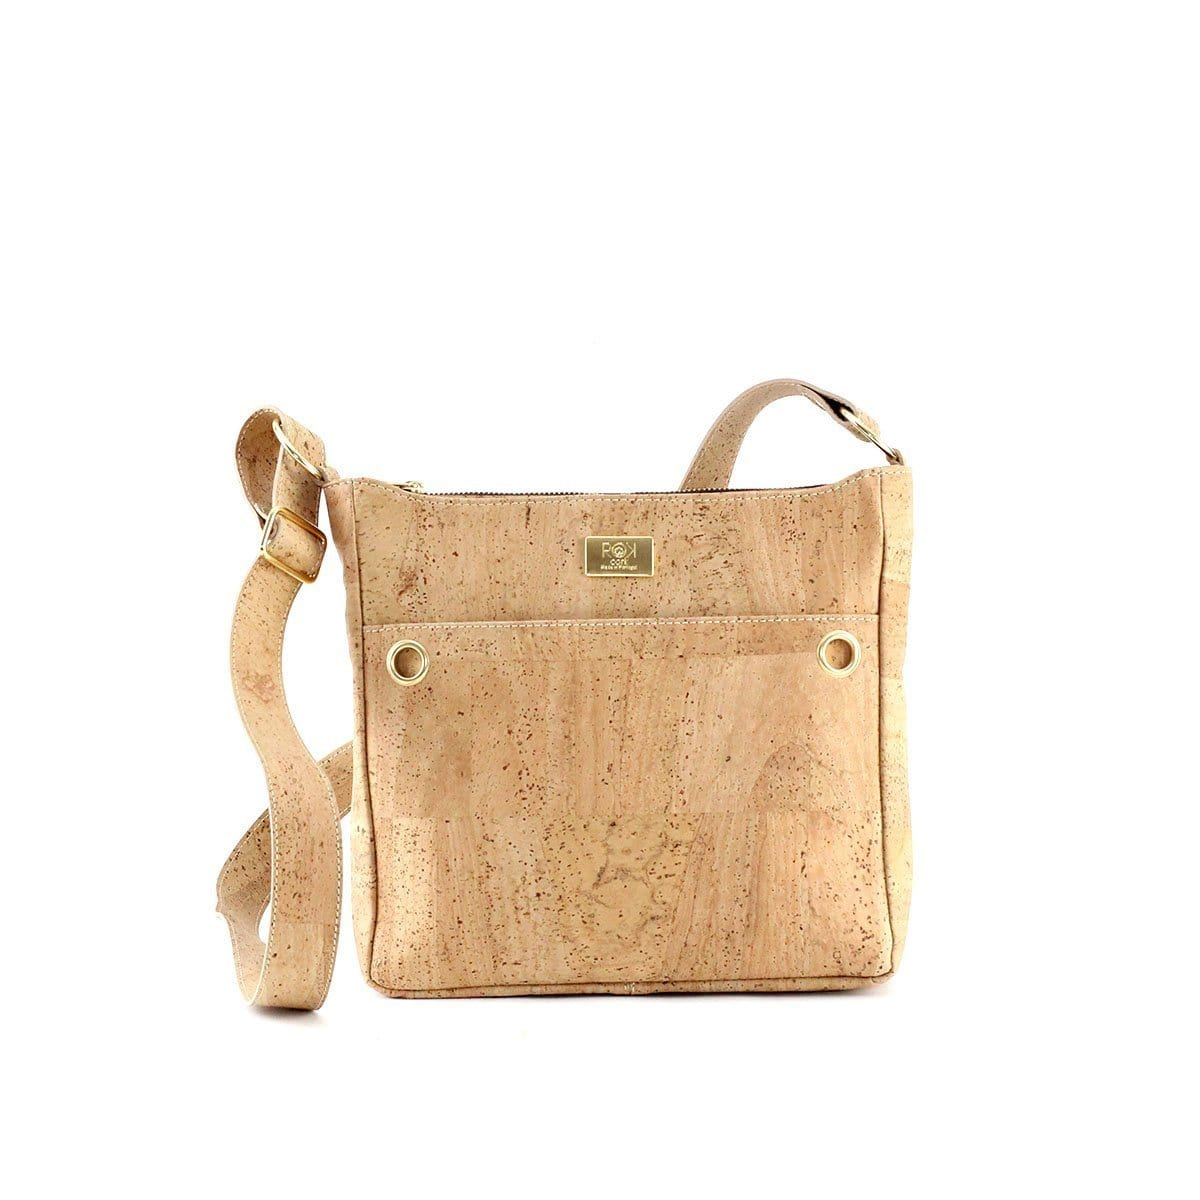 ROK Cork Hailey Messenger Bag - Natural - Naturally Anti-Microbial Hypoallergenic Sustainable Eco-Friendly Cork